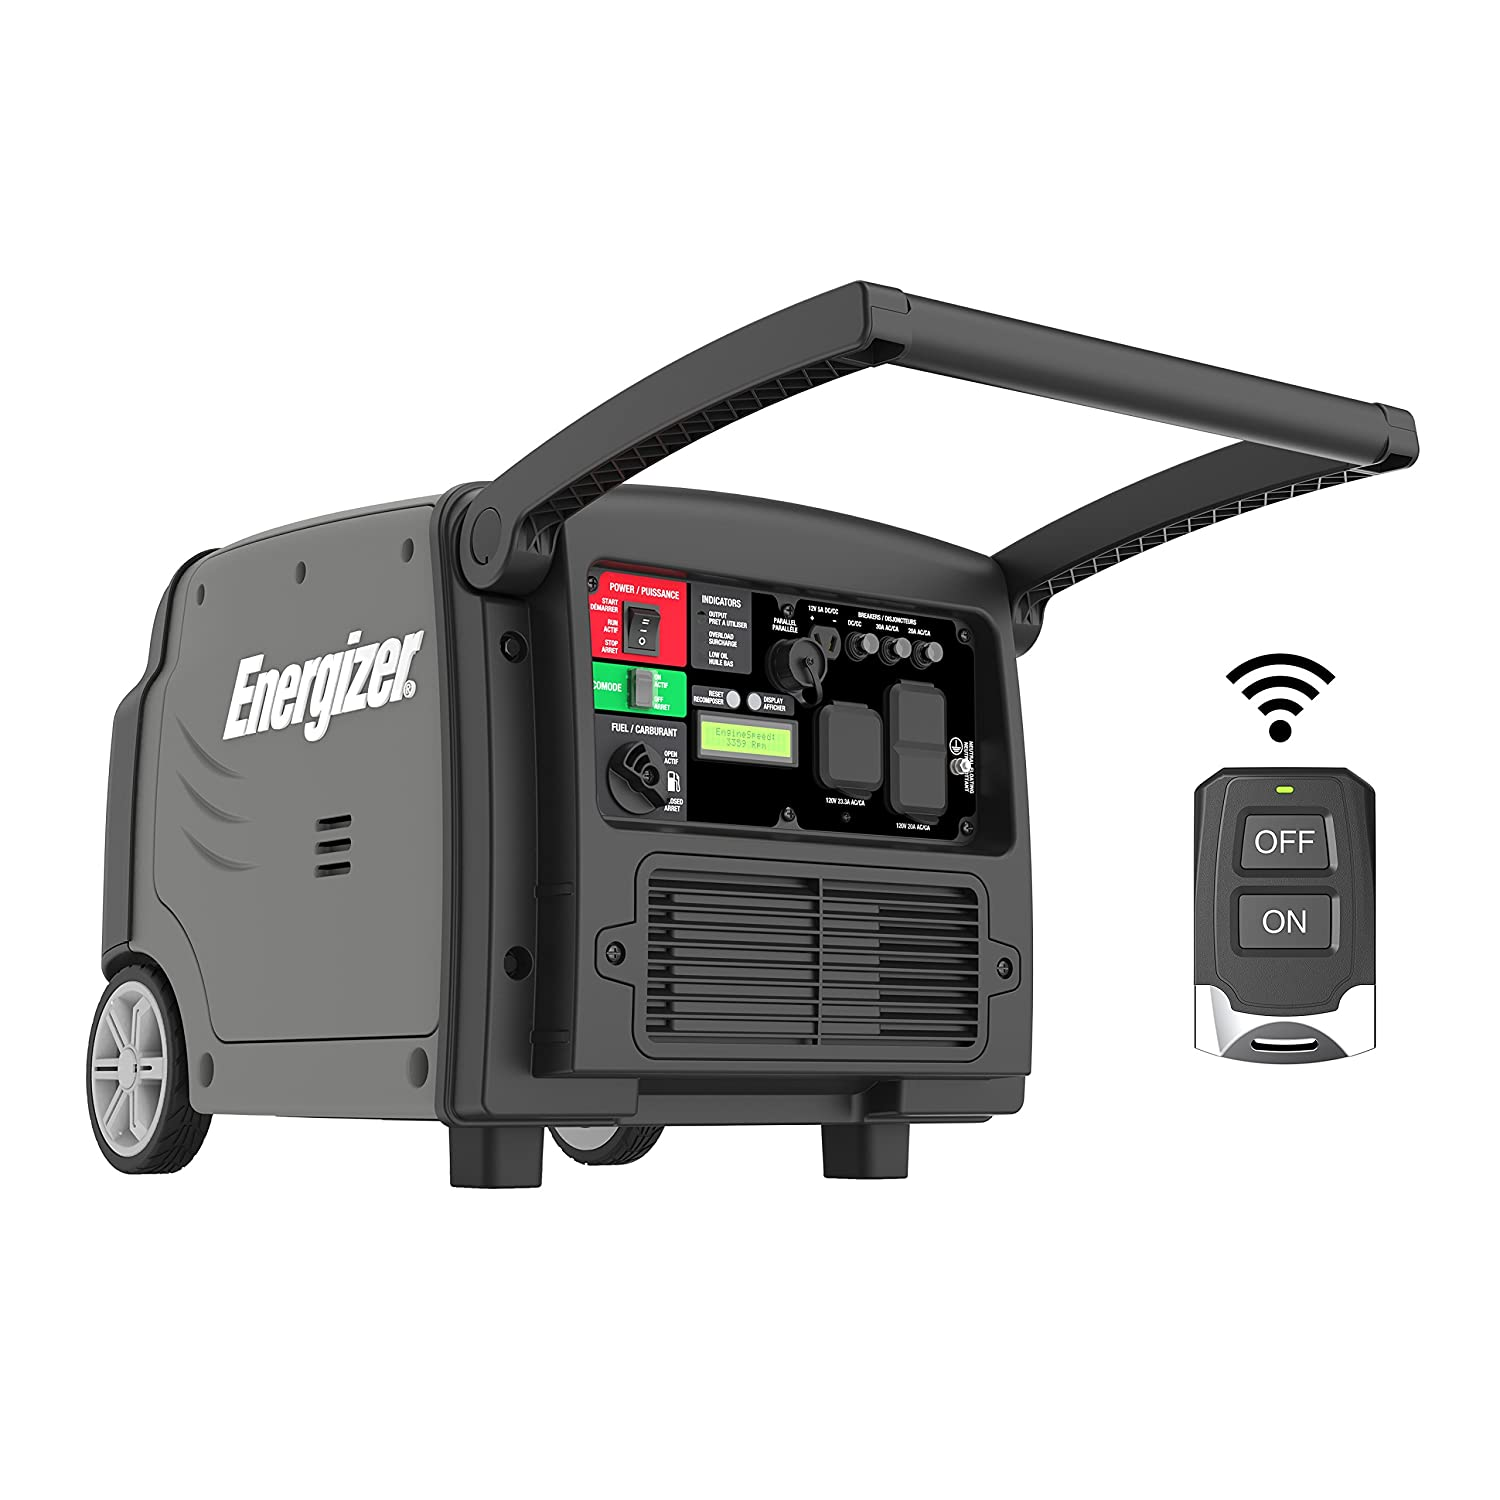 Portable Generator Reviewstop Models For 2019 Energy Gurus Connecting A To Your Home Safely And Effectively Finishing Off Our Round Up Of Some The Best Available Gas Powered Generators Is Model With An Instantly Recognizable Name